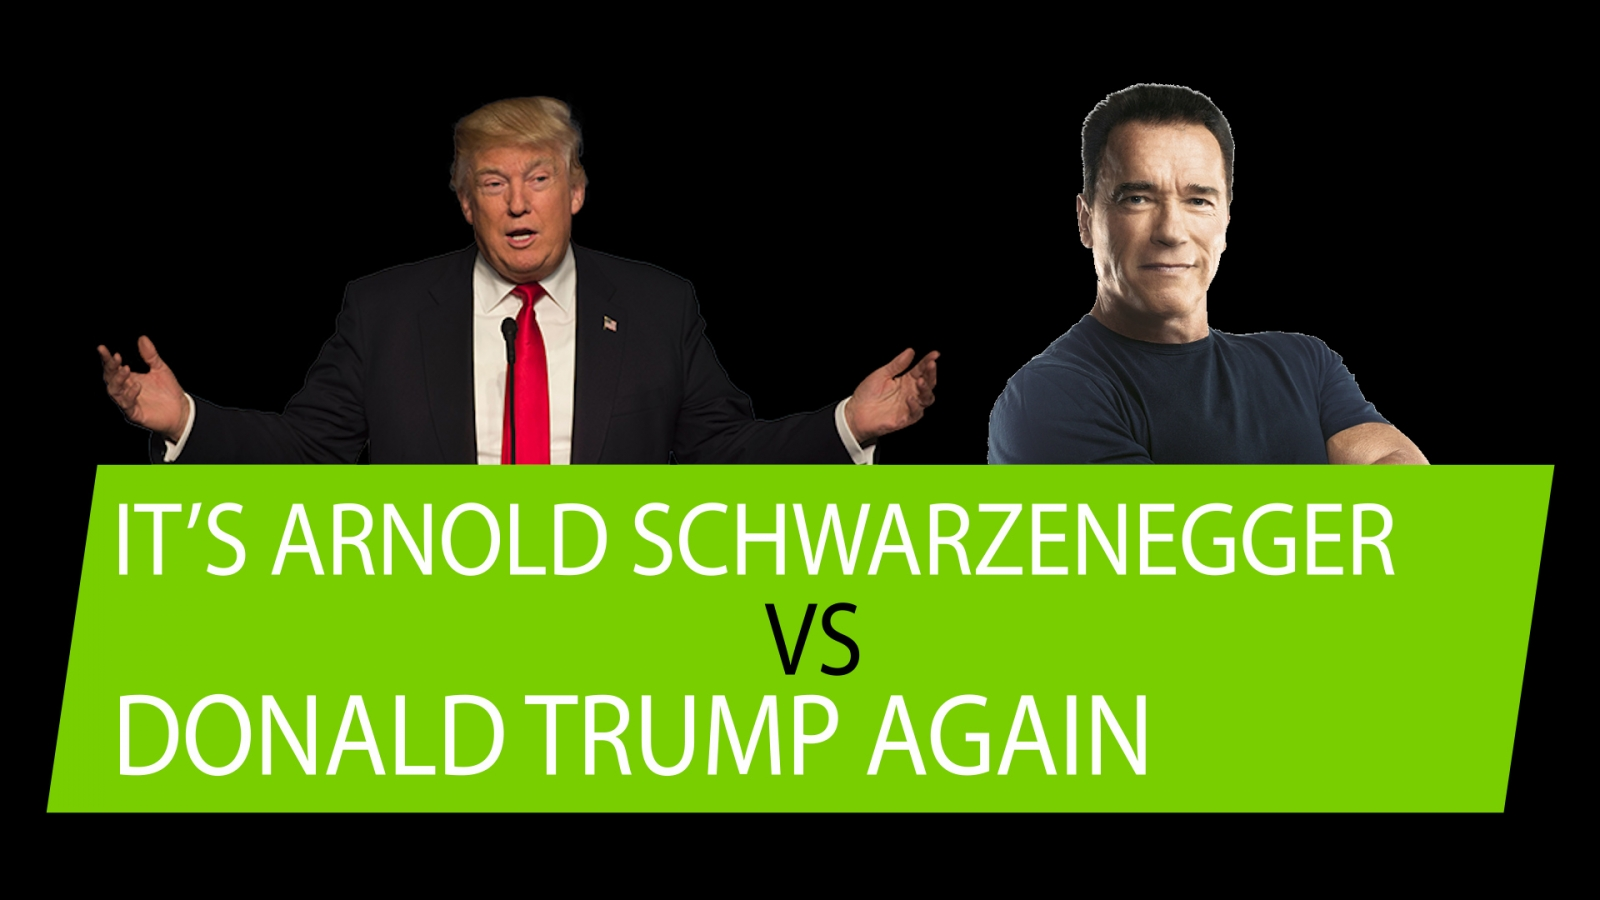 arnold-schwarzenegger-ramps-up-his-feud-with-president-trump-again